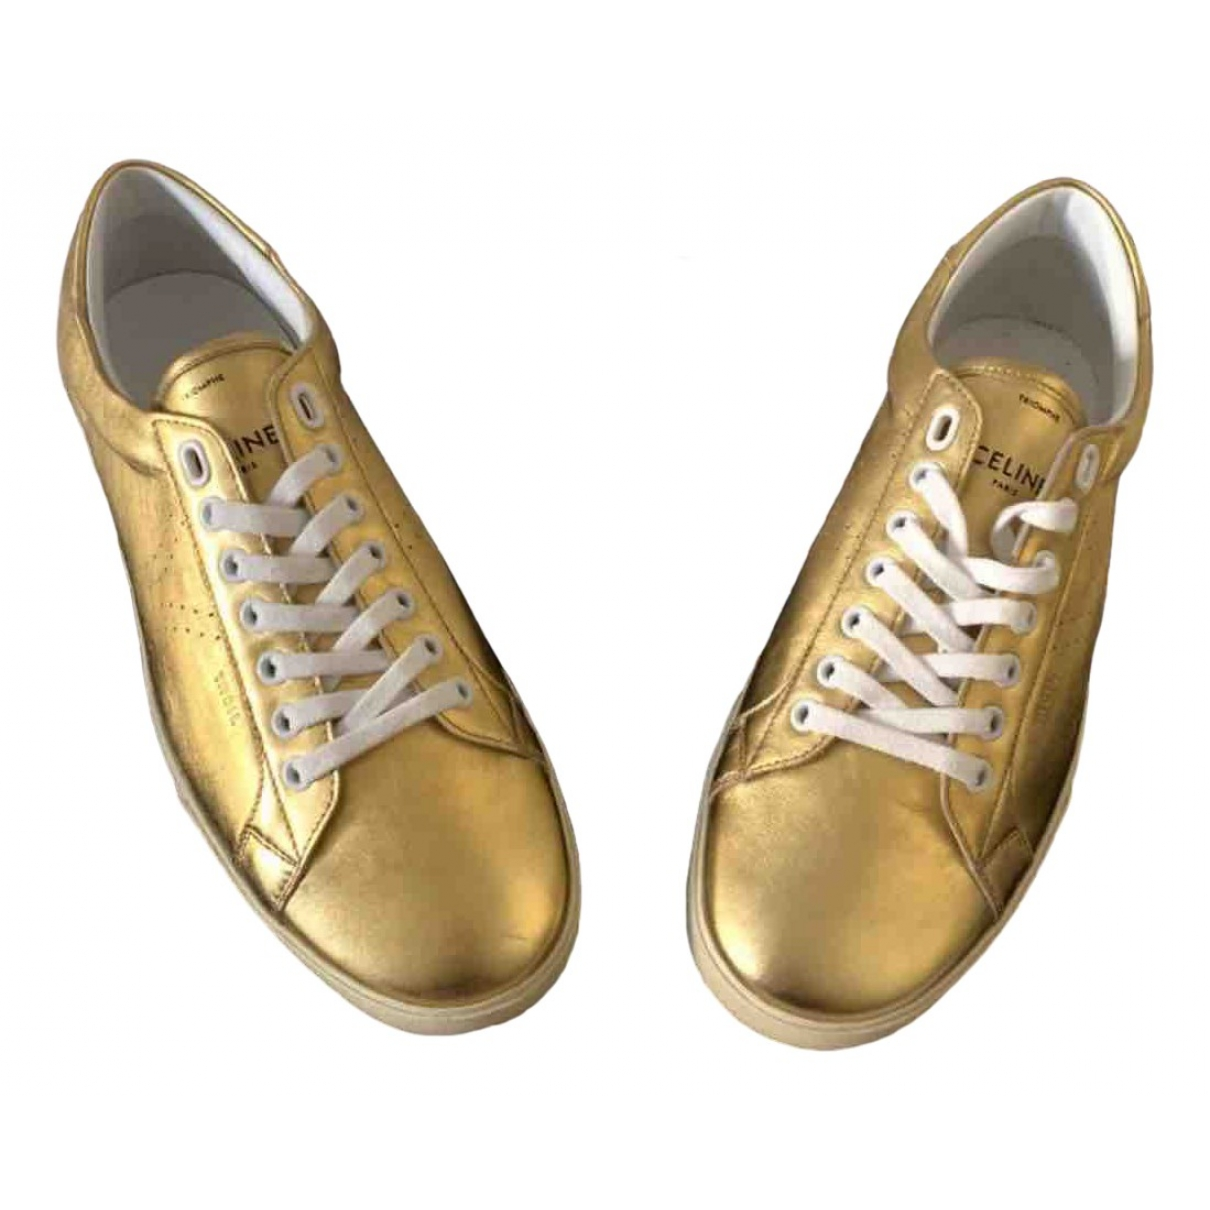 Celine Triomphe Gold Leather Trainers for Women 36 EU